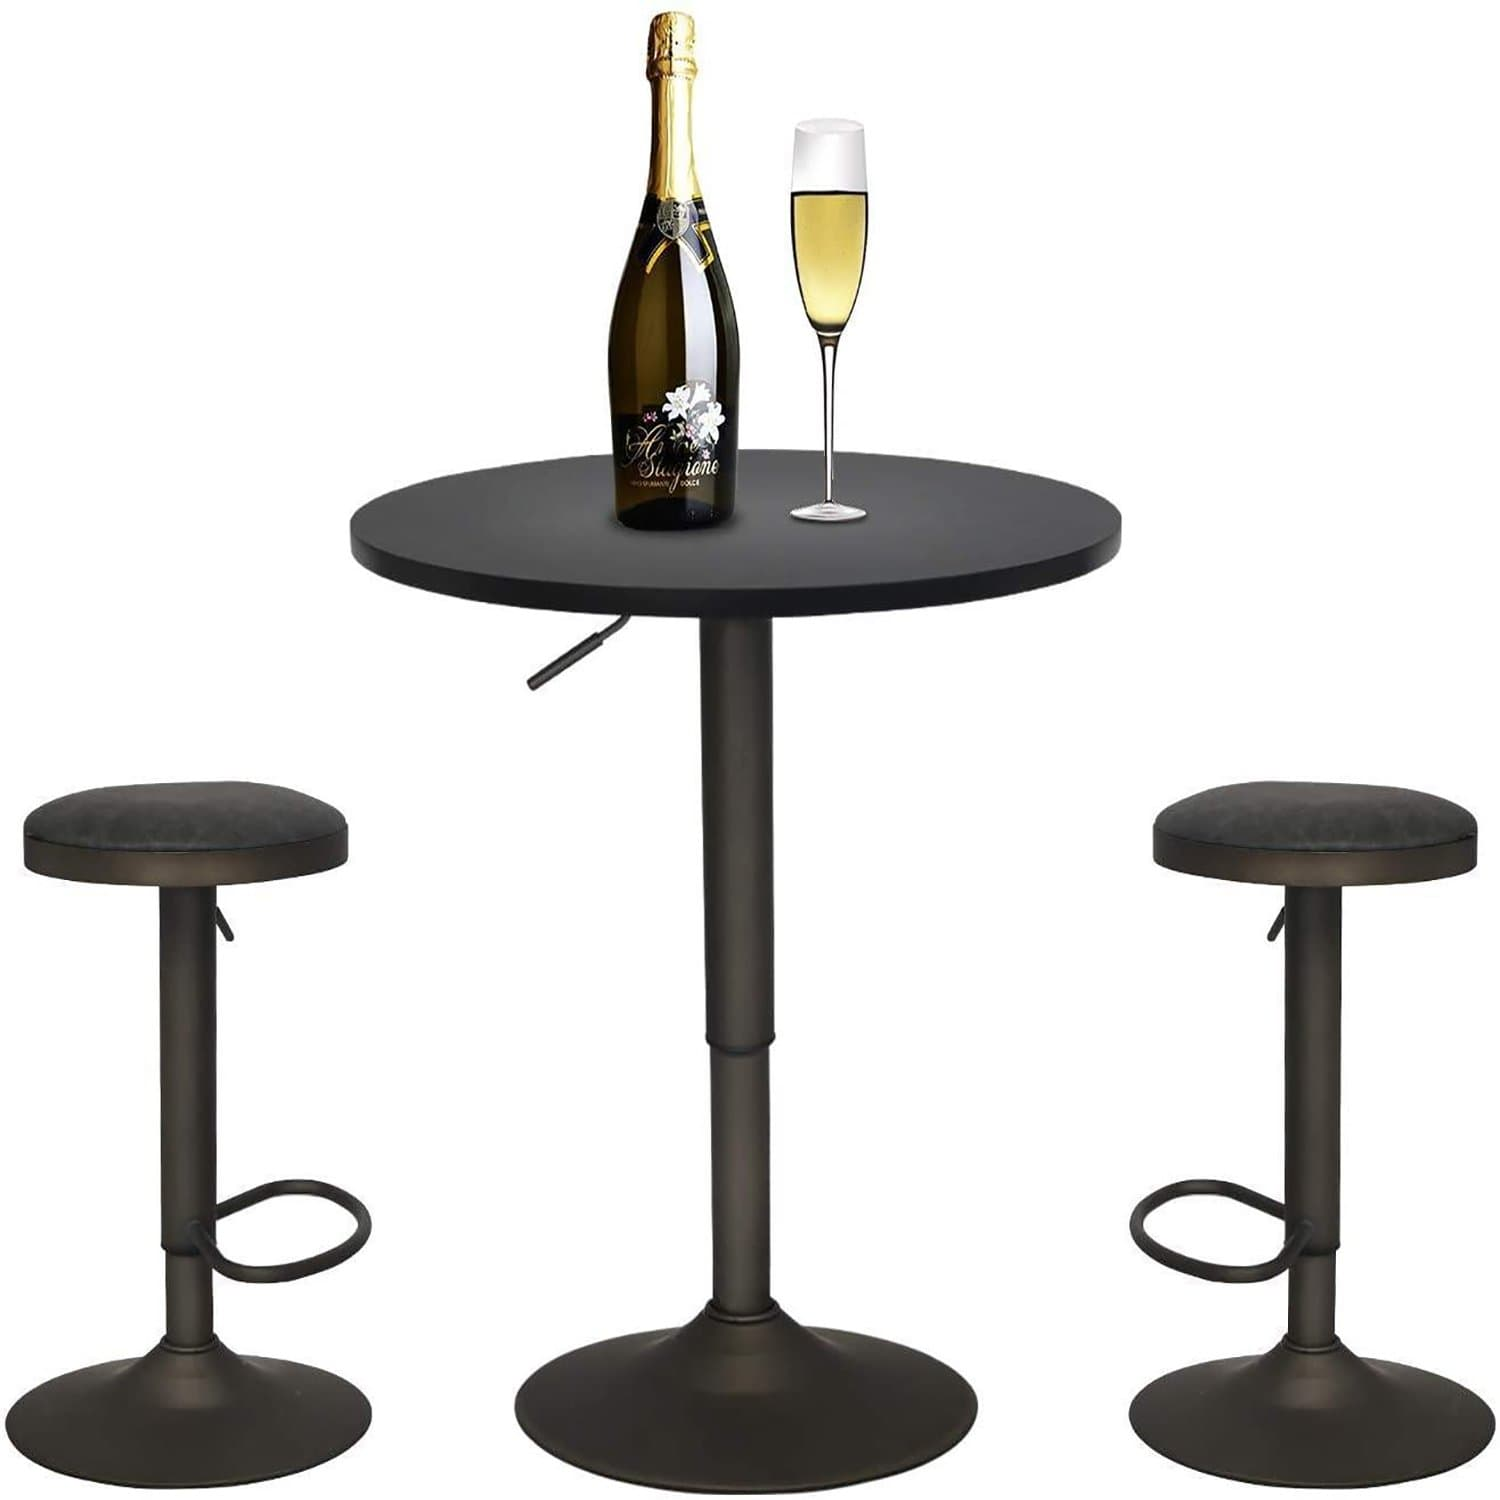 PULUOMIS  Black Bar Set With One Bar Table with 2 360-Degree Swivel & Adjustable Height stools